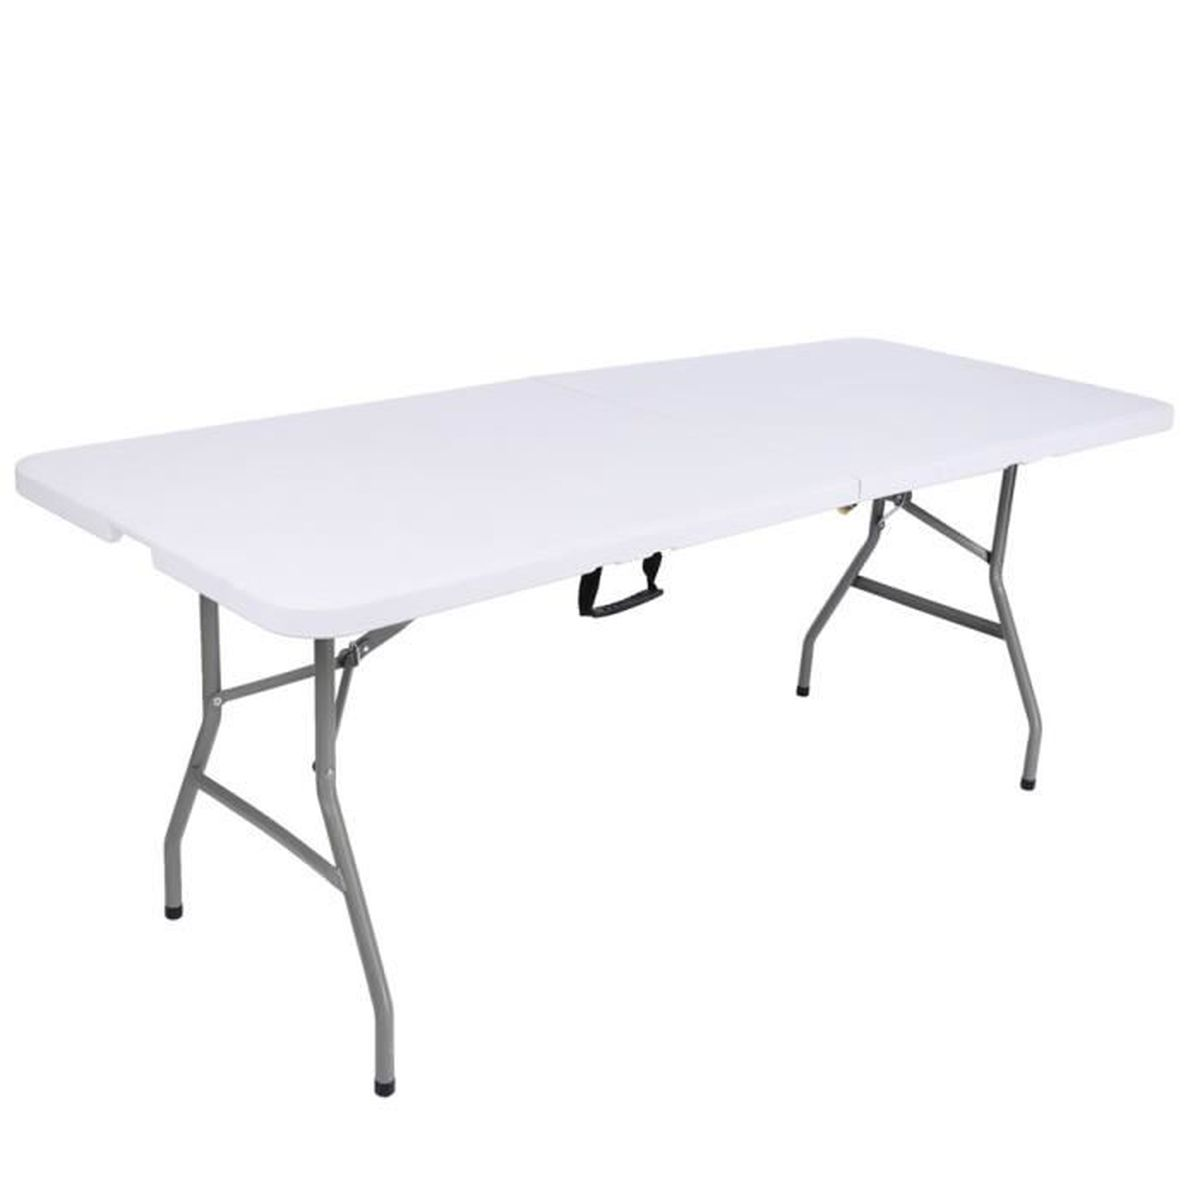 Table pique nique camping barbecue jardin ext rieur for Table exterieur pliante